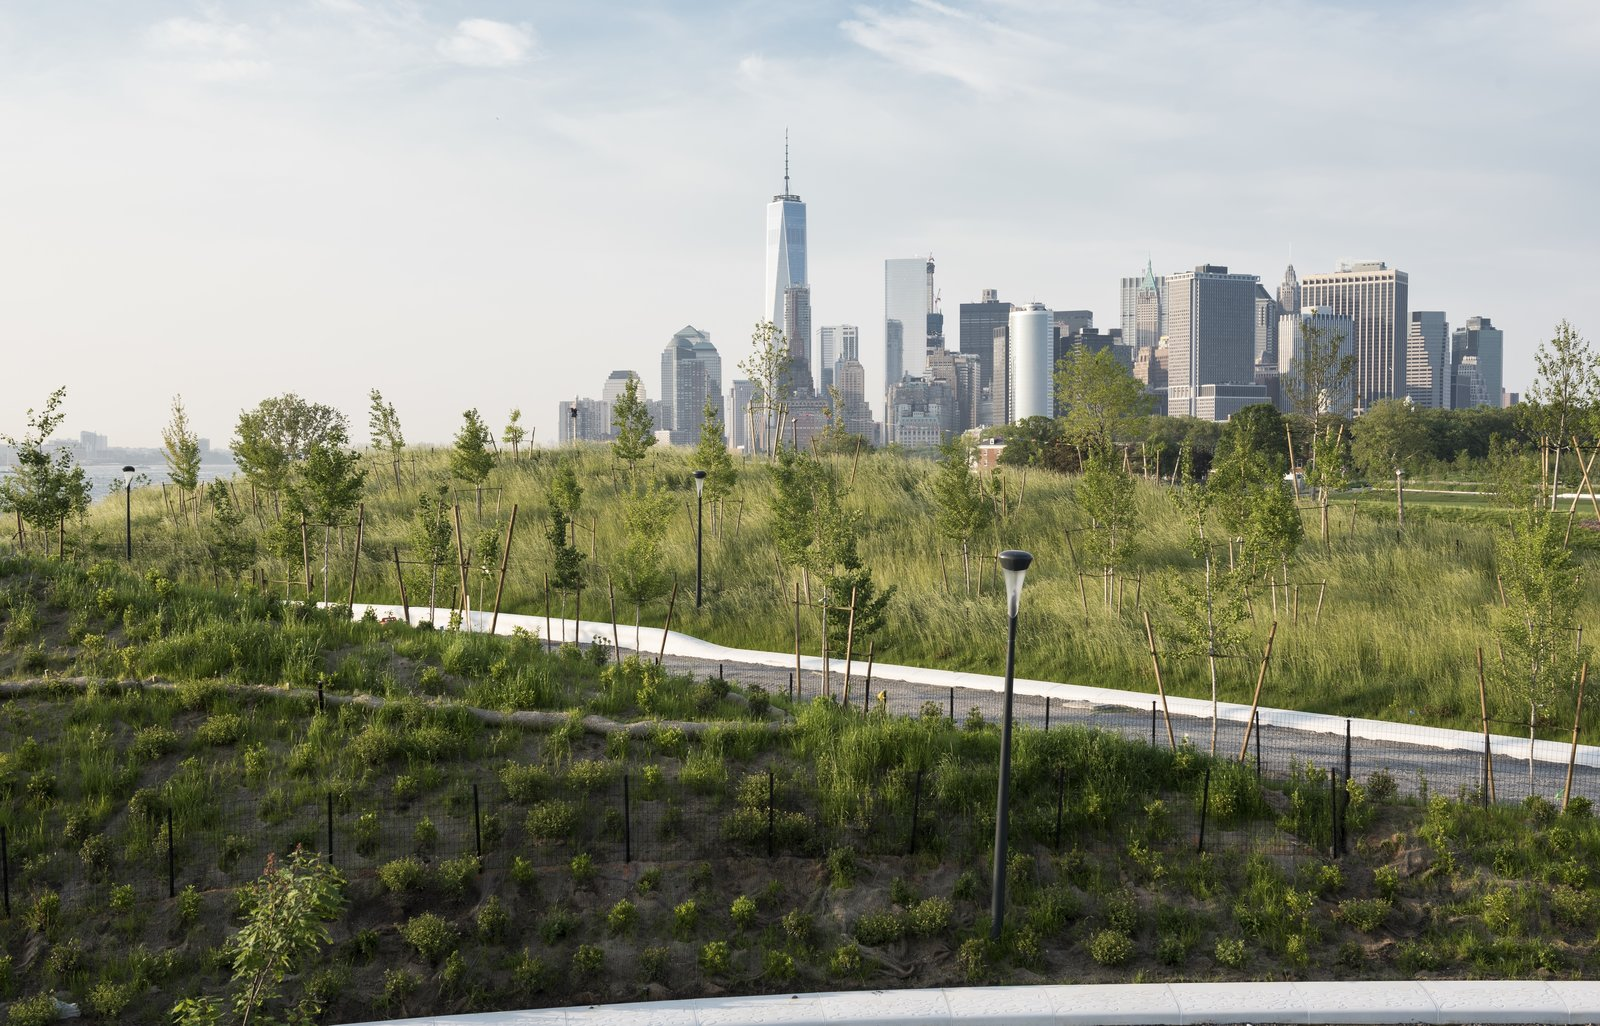 The planting plan was designed to provide viewing corridors toward the city, with visitors enjoying 360-degree vistas from the top of the tallest hill. Some 830 trees from 32 species selected for their size, color, and heartiness—including a variety of oaks and sassafras—were planted on The Hills, with a mix of balled-and-burlapped and container techniques.